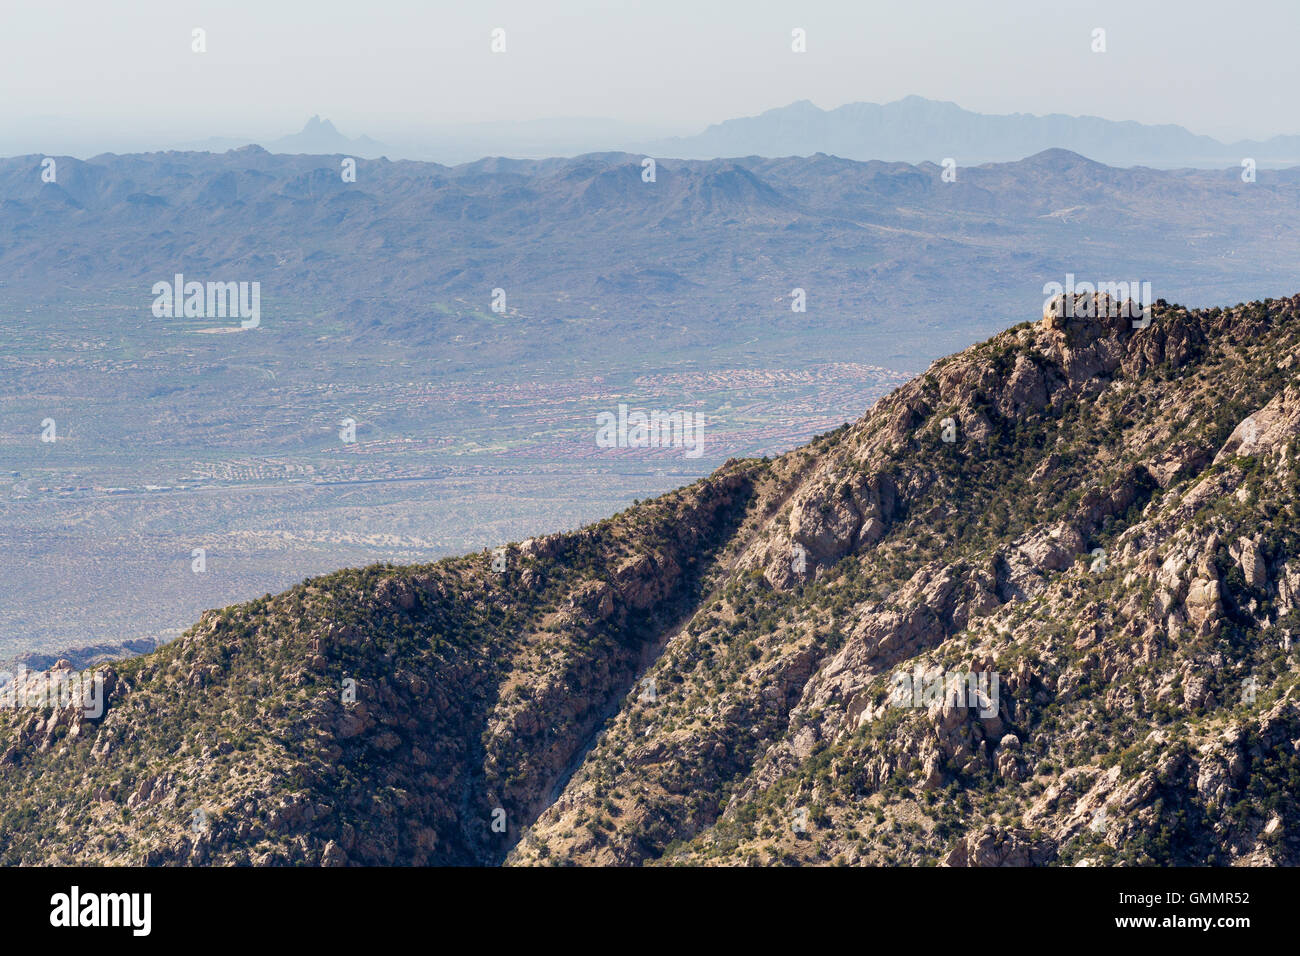 Urban sprawl from Tuscon spreading out below the Santa Catalina Mountains. Pusch Ridge Wilderness, Arizona - Stock Image